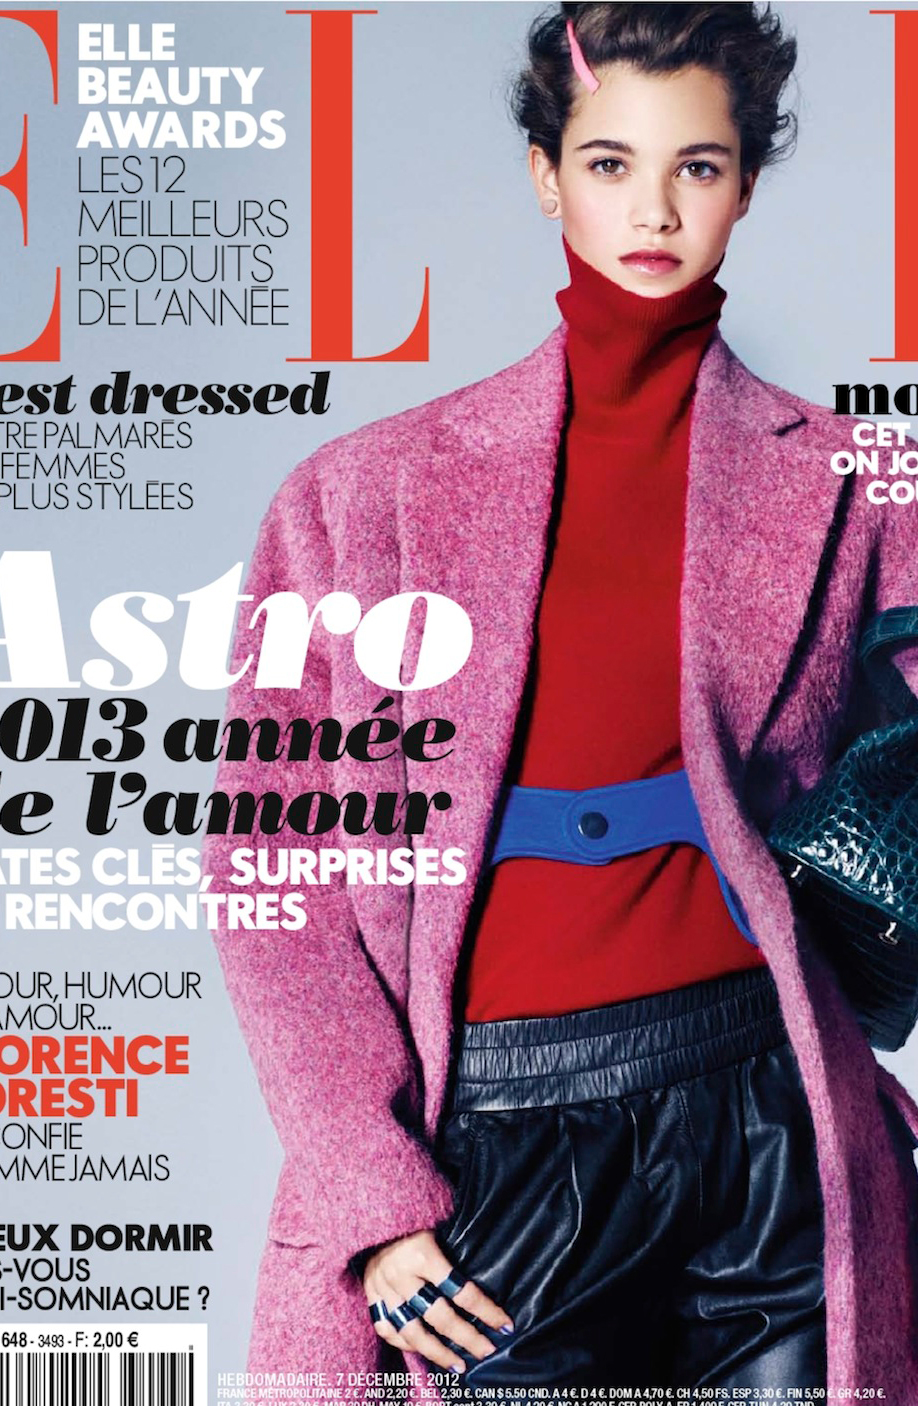 Anne-Marie Van Dijk shares her beauty secrets and favourite beauty products in Elle France December 2012 / via fashioned by love british fashion blog / fashion models beauty secrets / natural beauty / best organic beauty products / tips for shopping in Paris